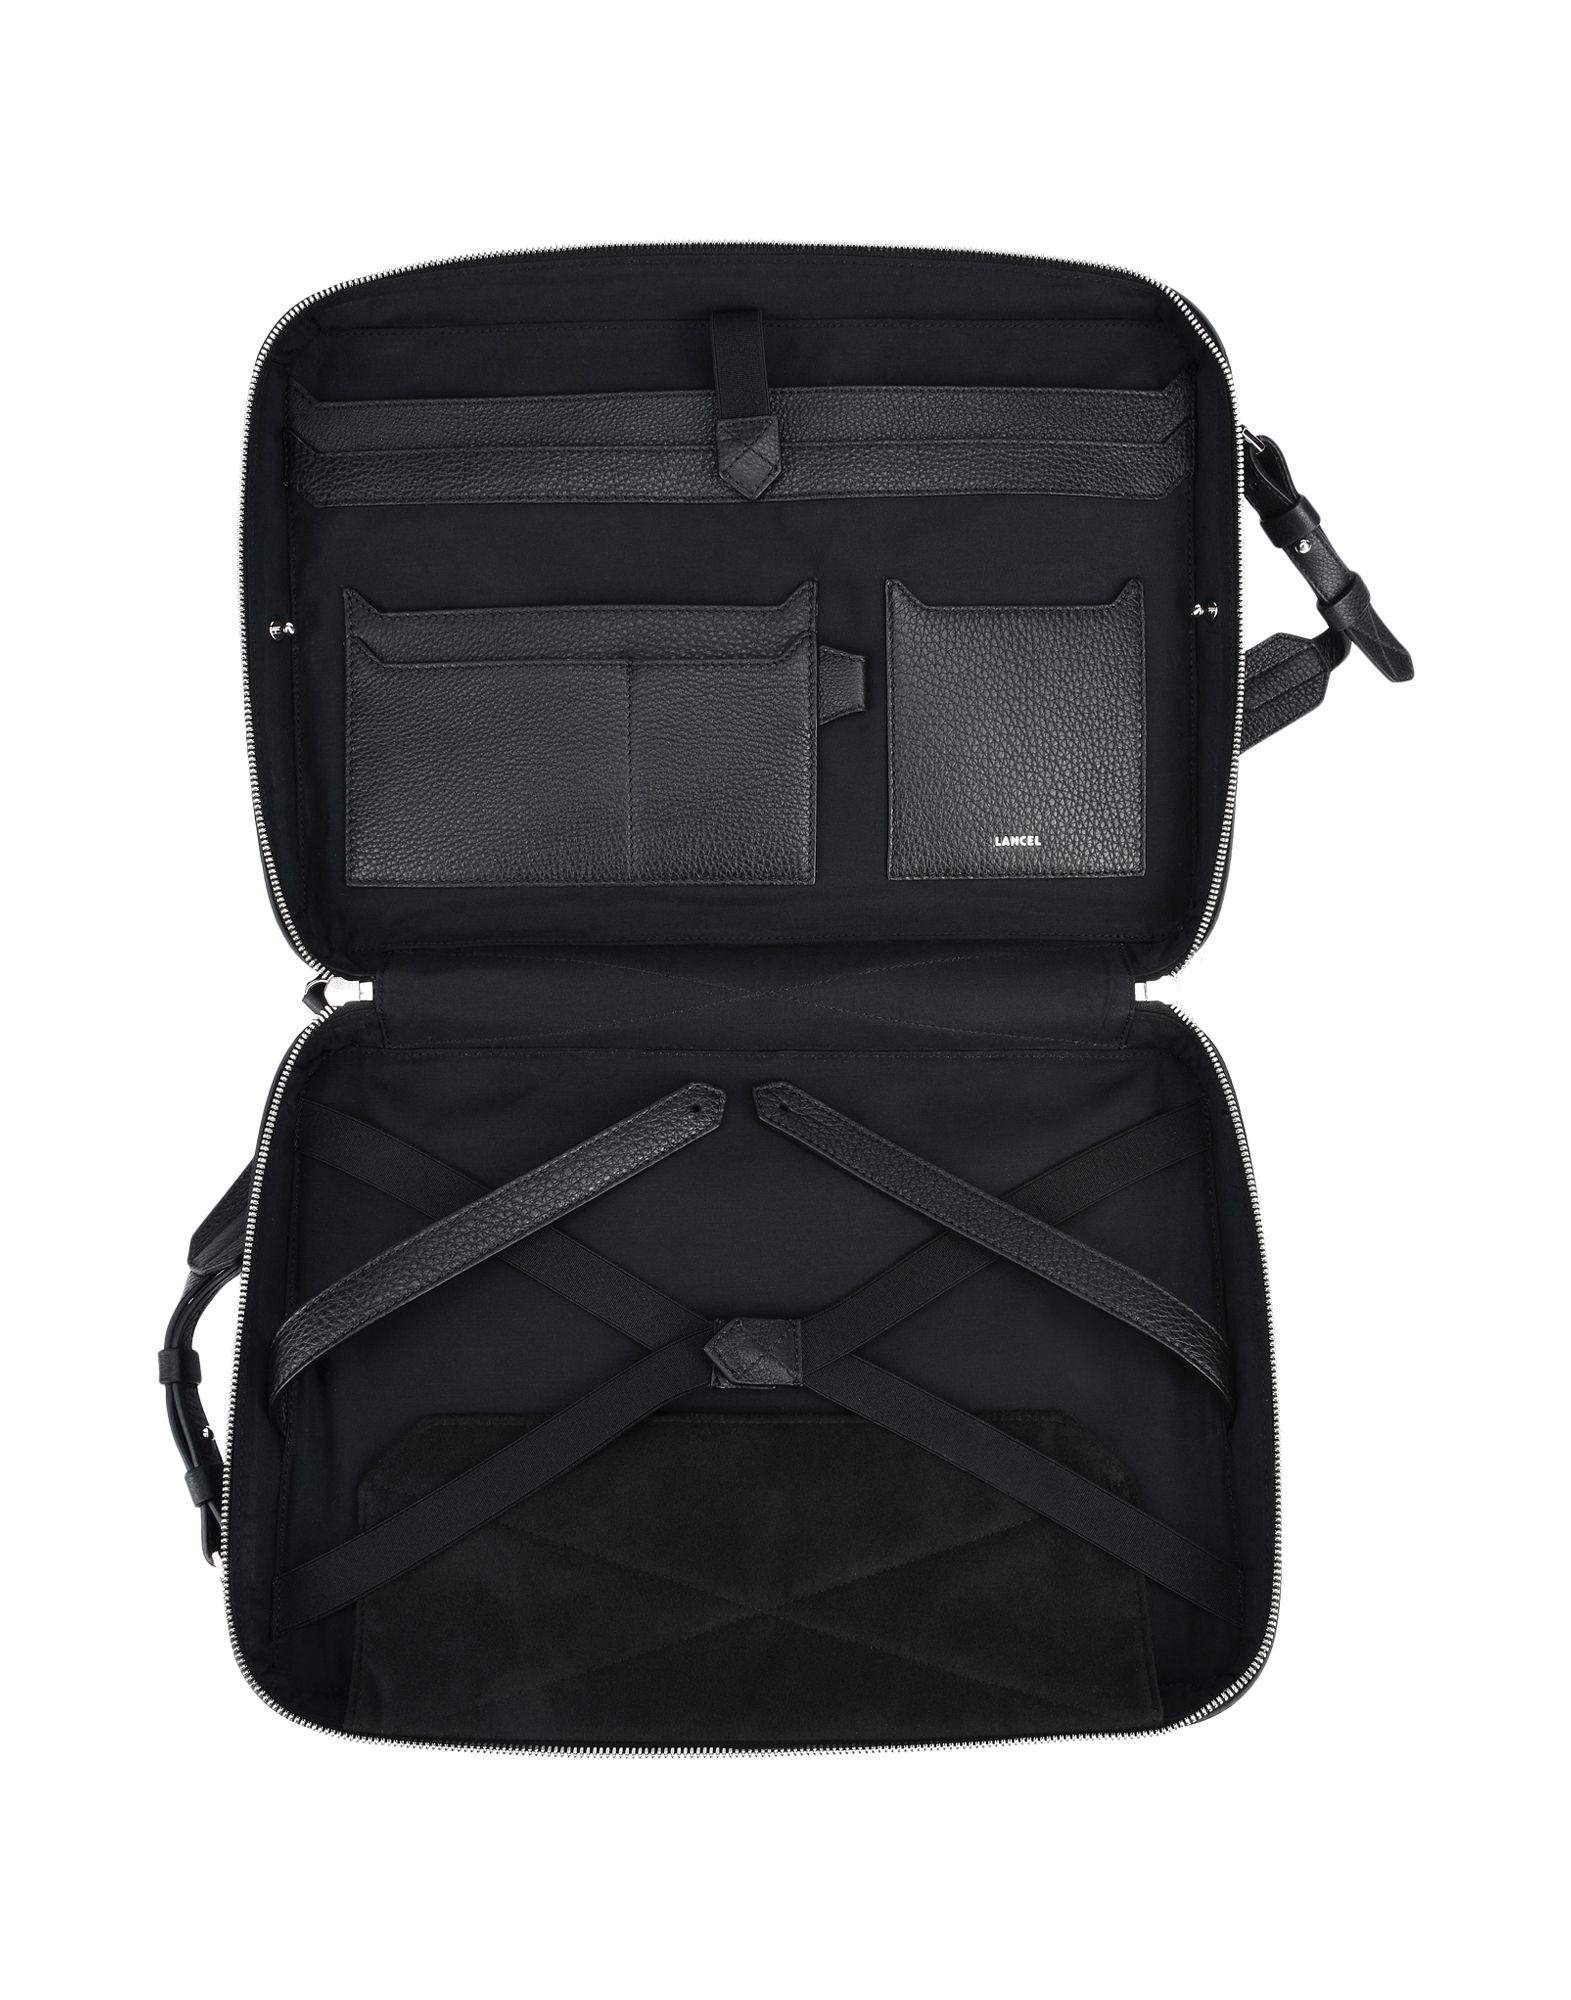 a2424a41022e Lyst - Lancel Work Bags in Black for Men